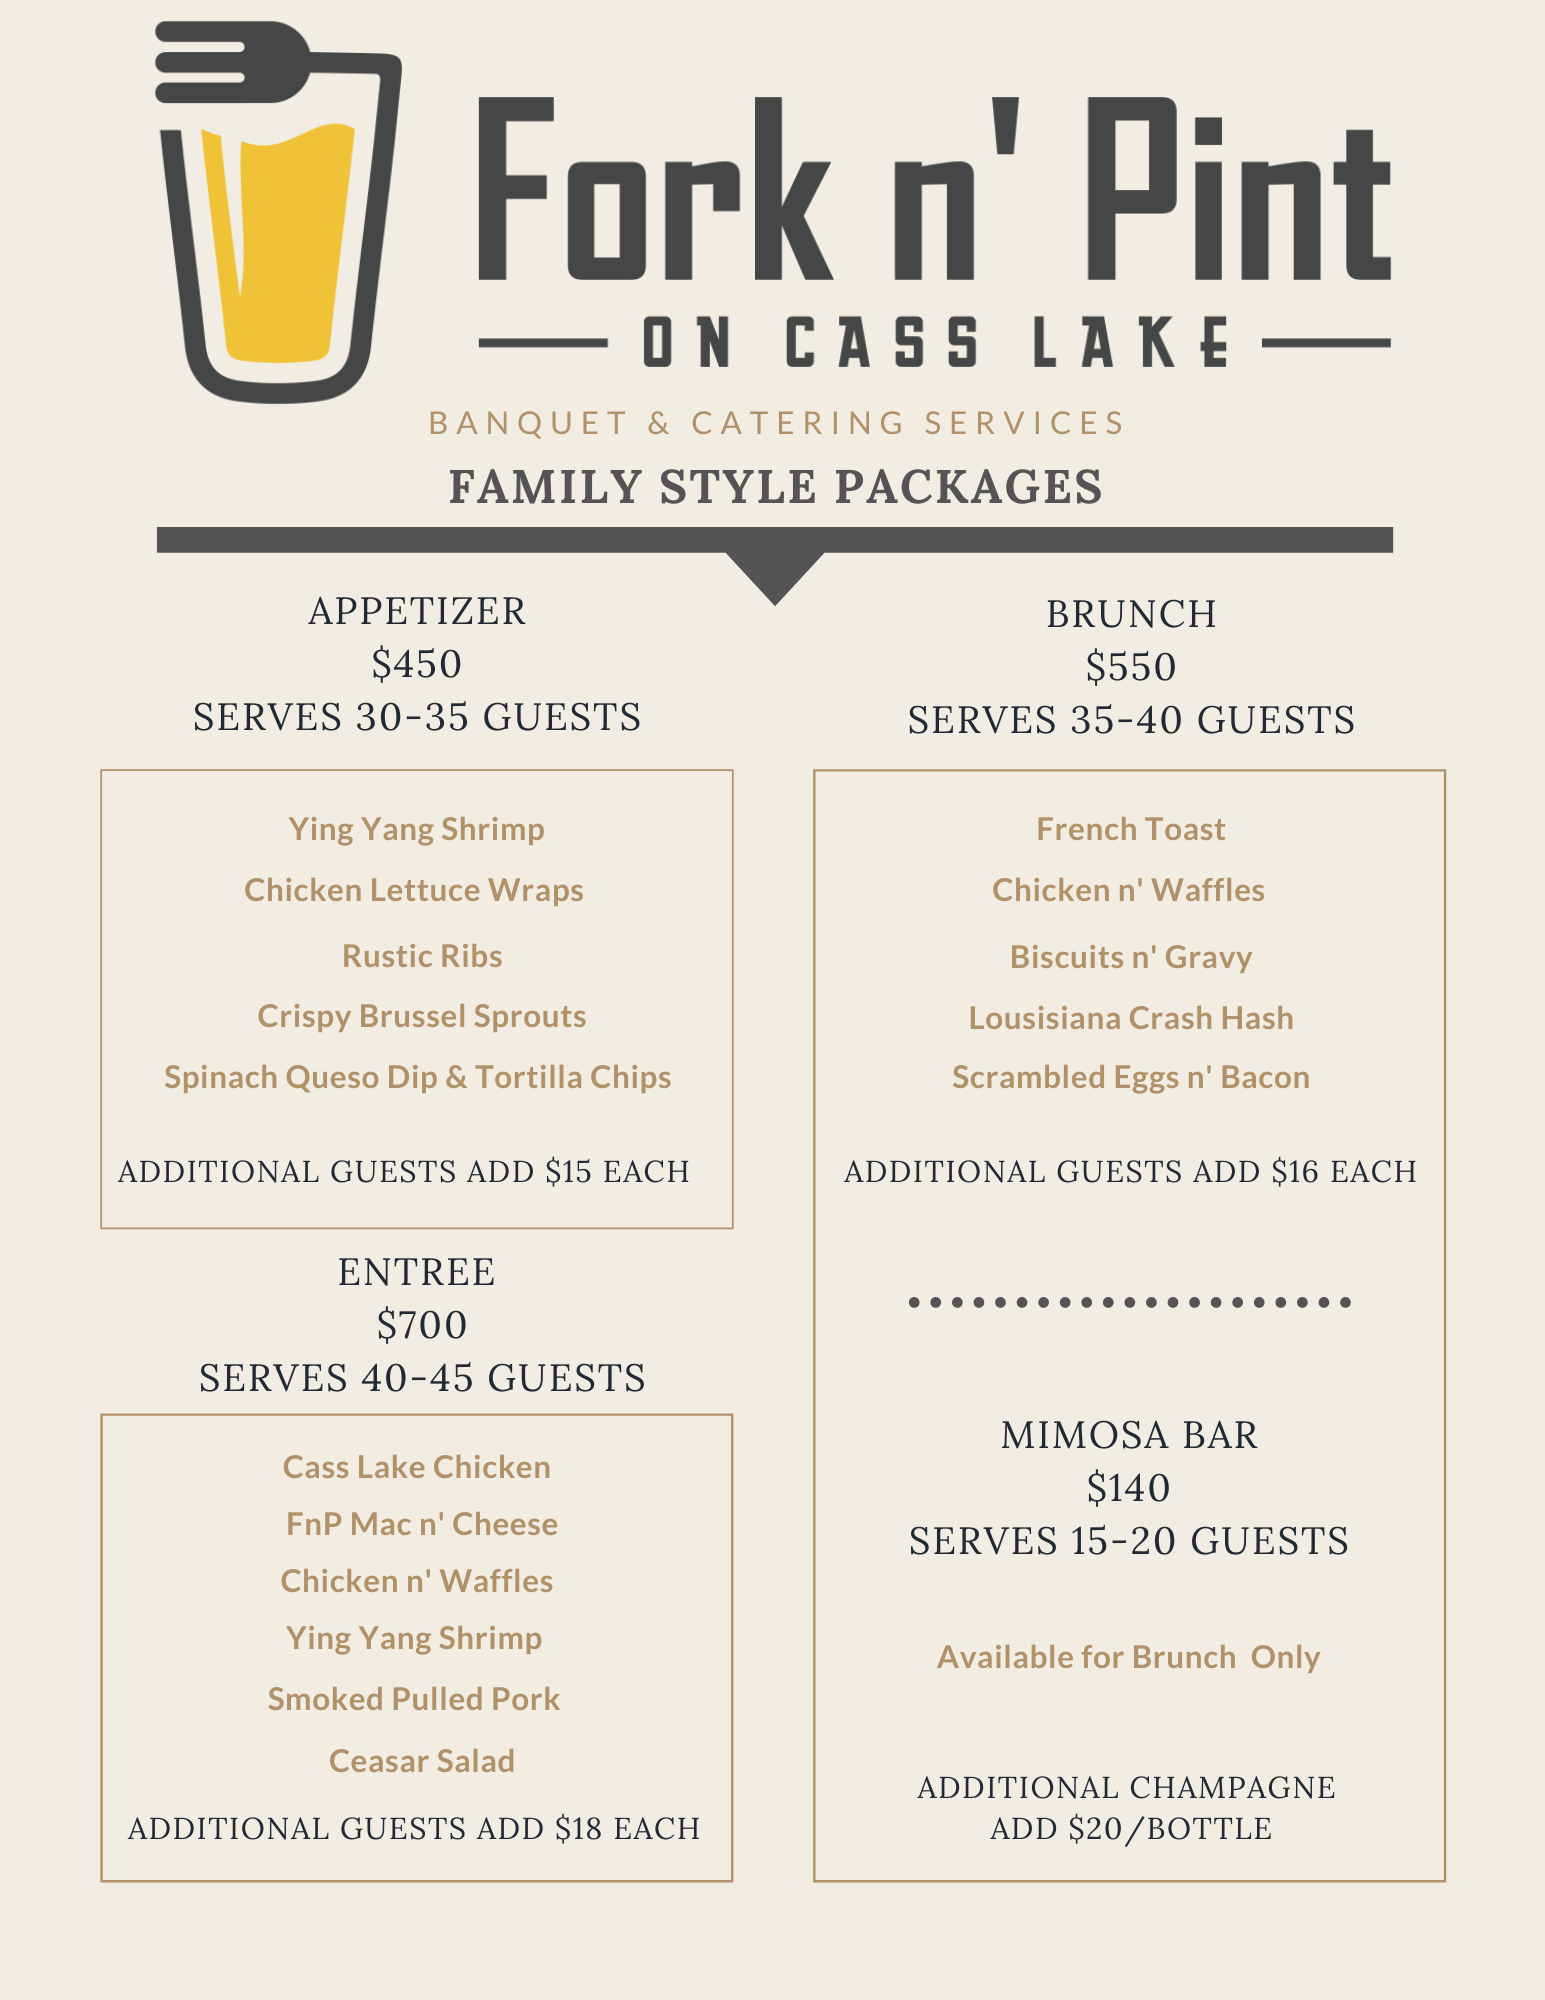 fork n' pint on class lake banquet and catering services family style packages